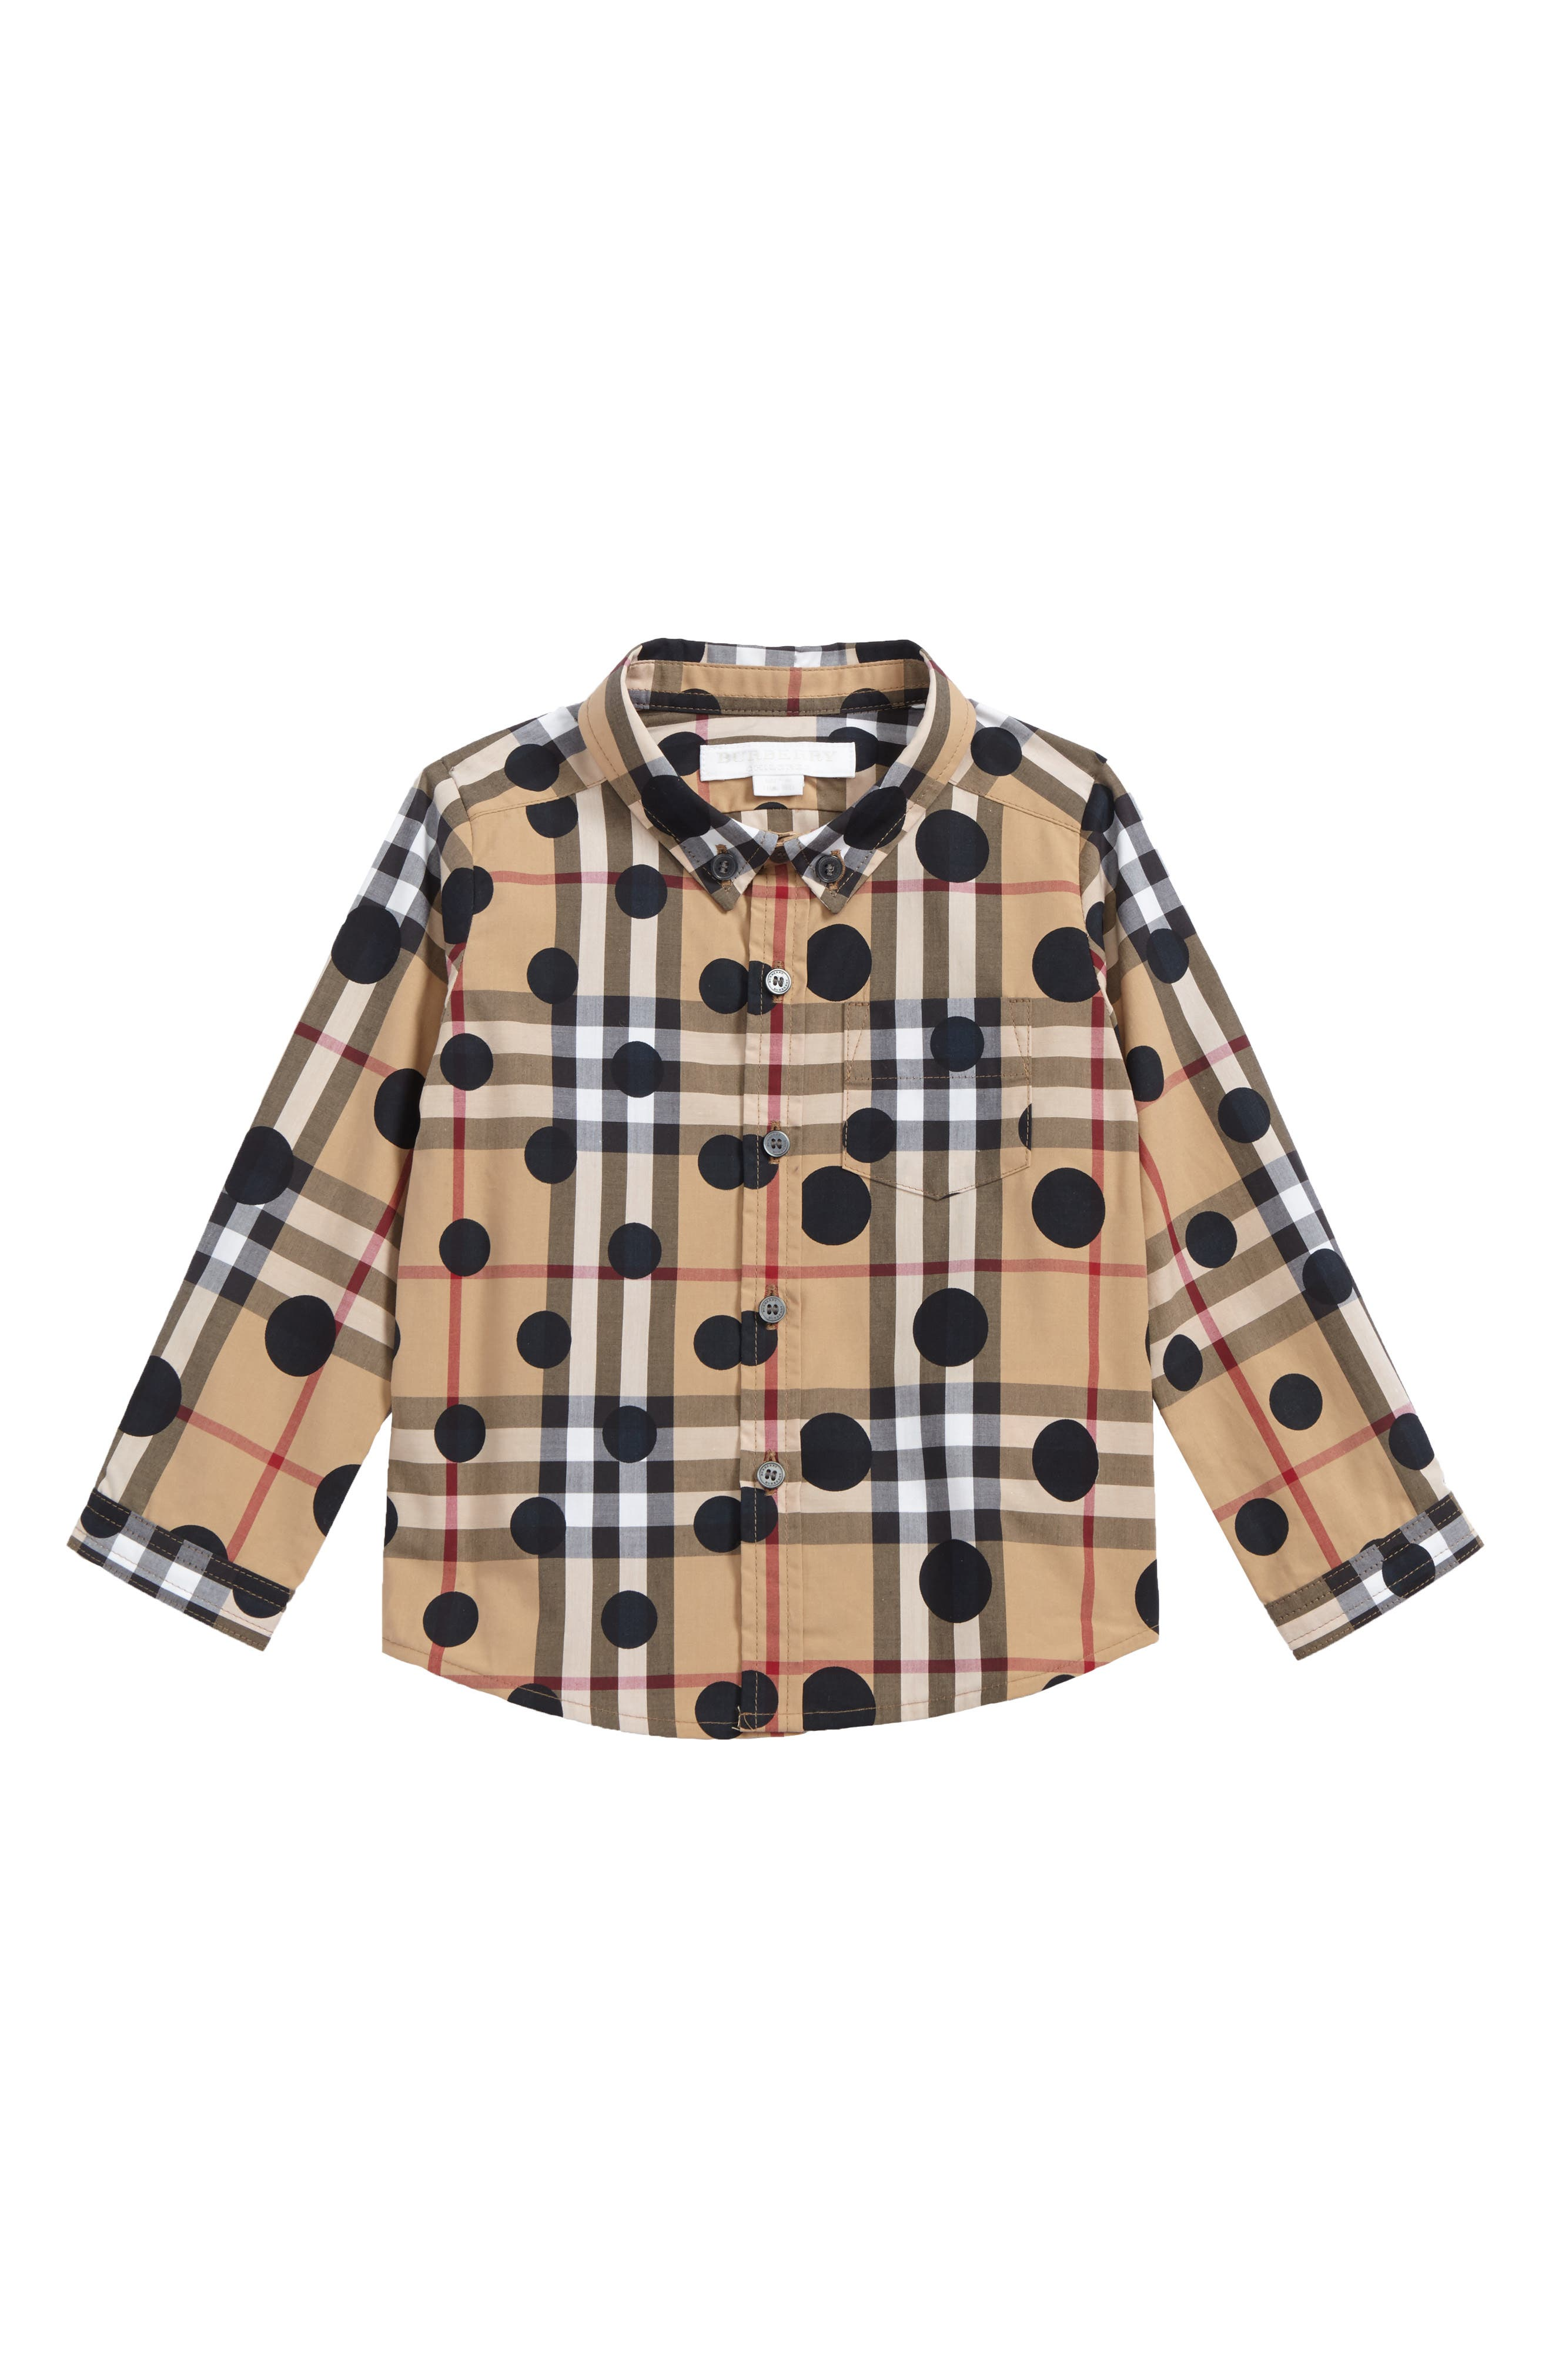 Mini Fred Polka Dot & Check Print Shirt, Main, color, 272